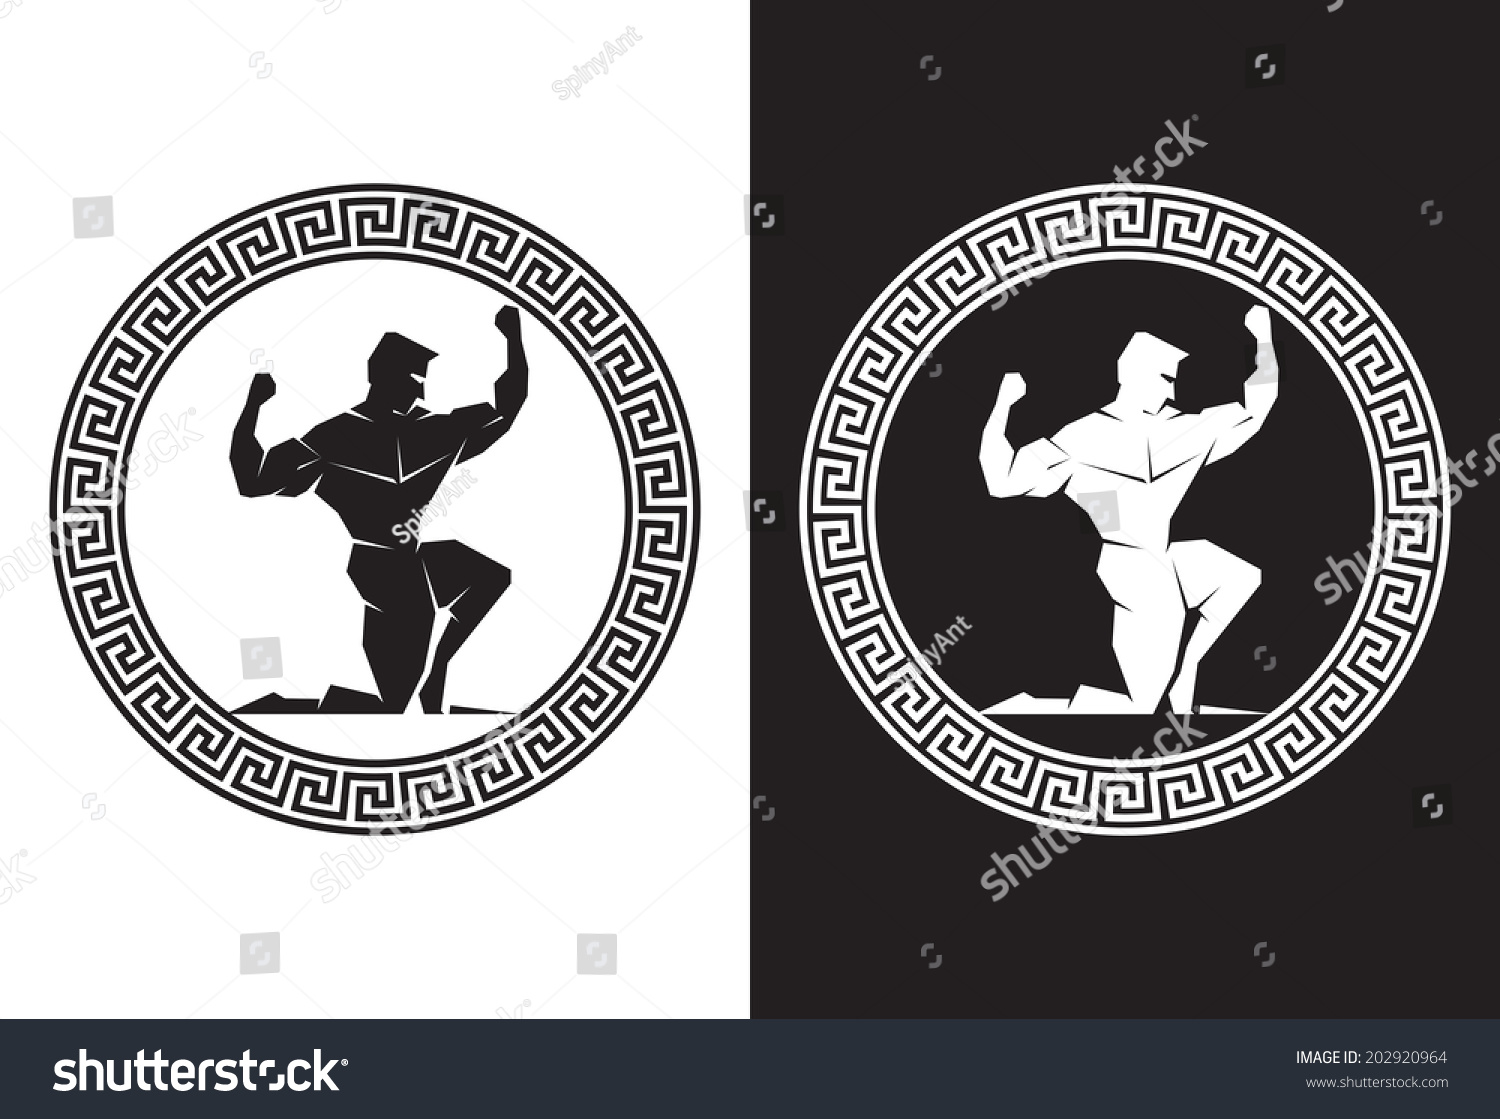 Hercules inside greek key front view stock vector 202920964 hercules inside a greek key front view buycottarizona Images